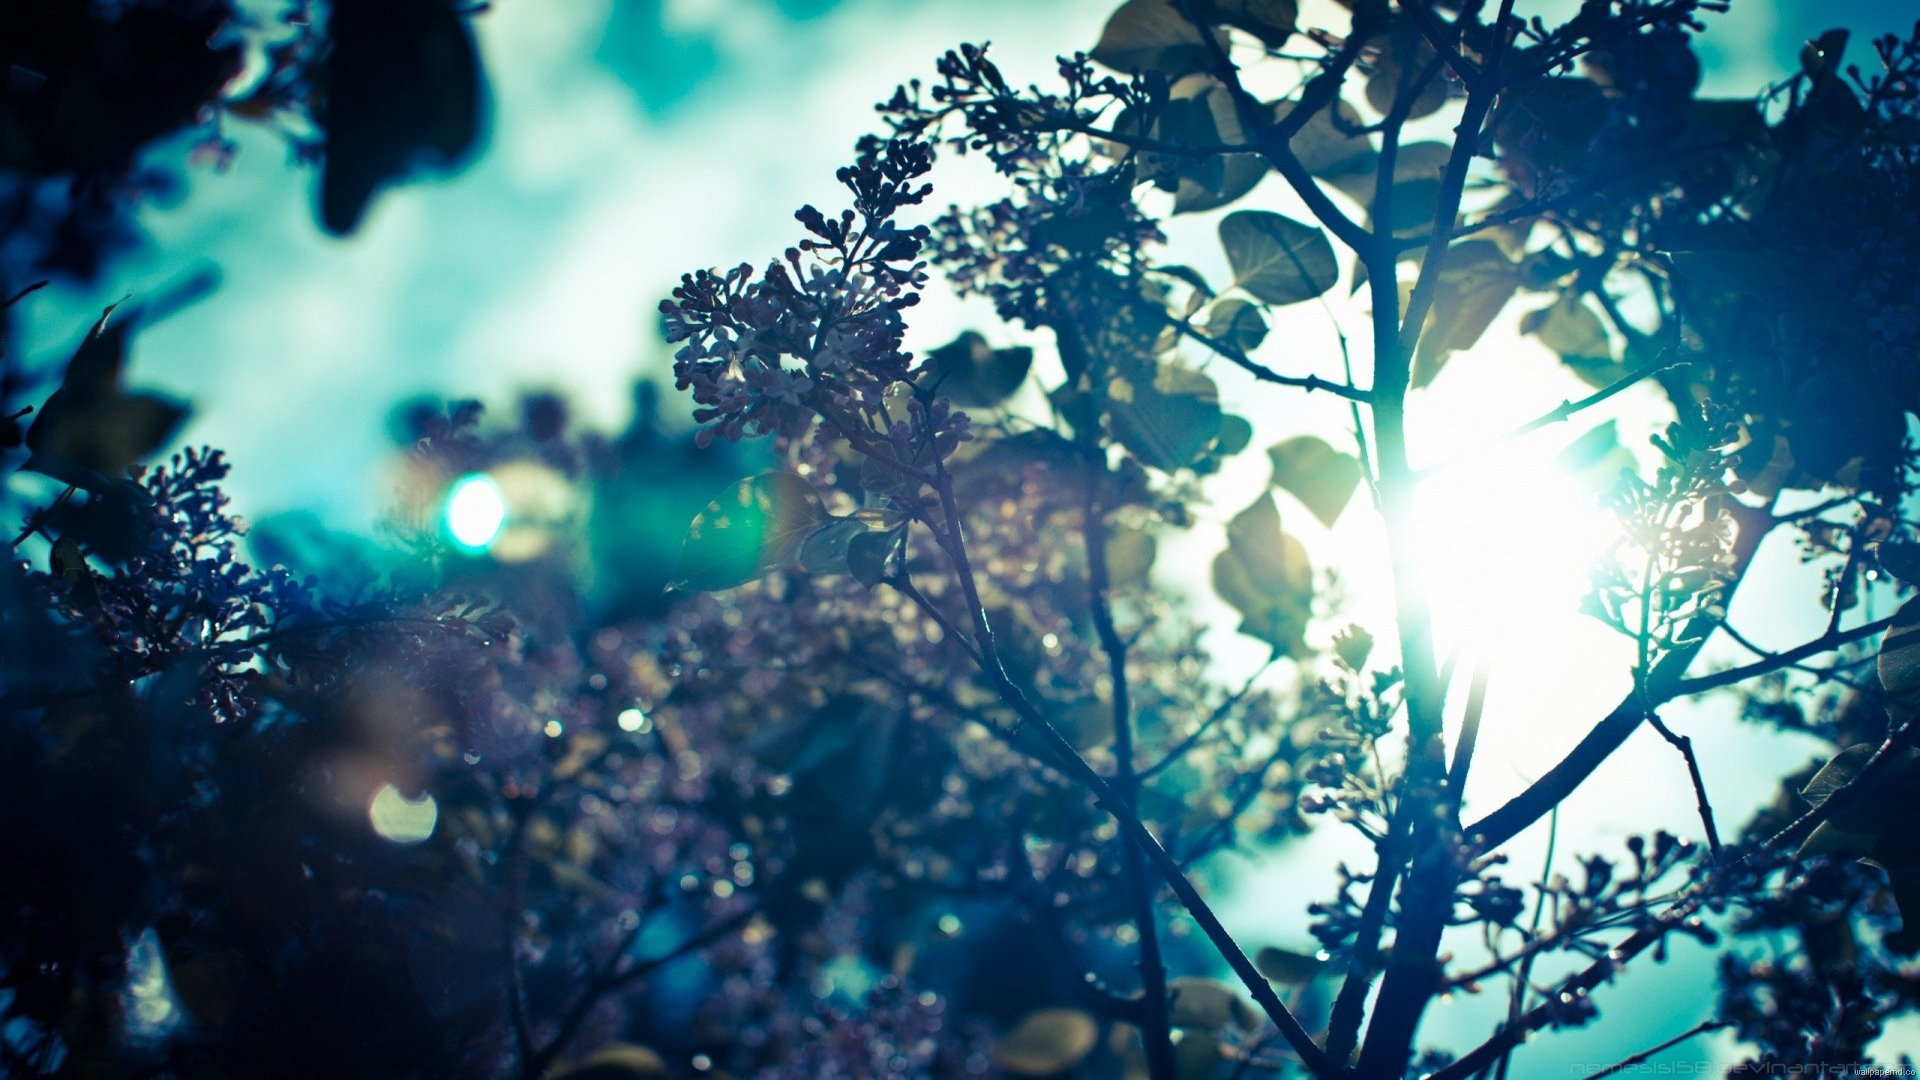 72 background wallpaper tumblr Pictures